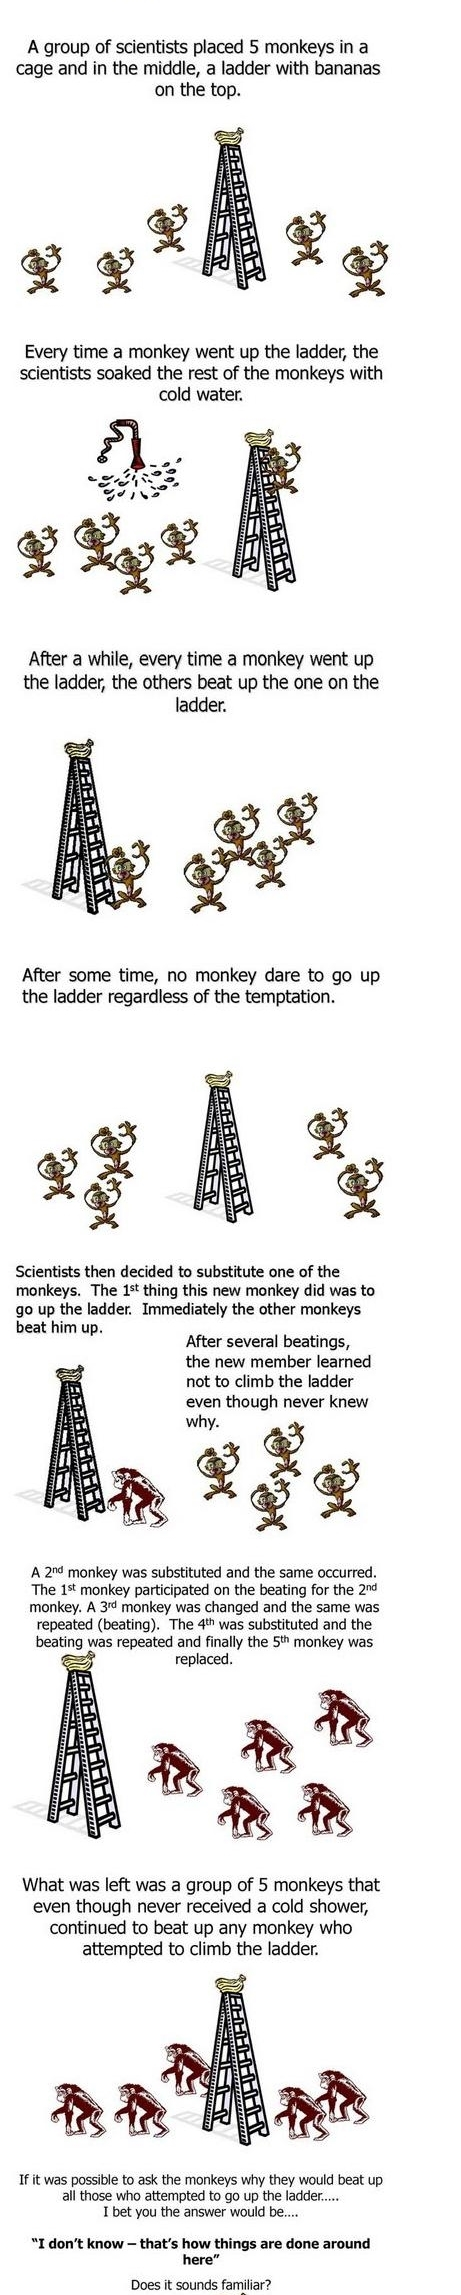 Interesting Facts- Five Monkeys Theory (Wet Monkey Theory)-crop-crop